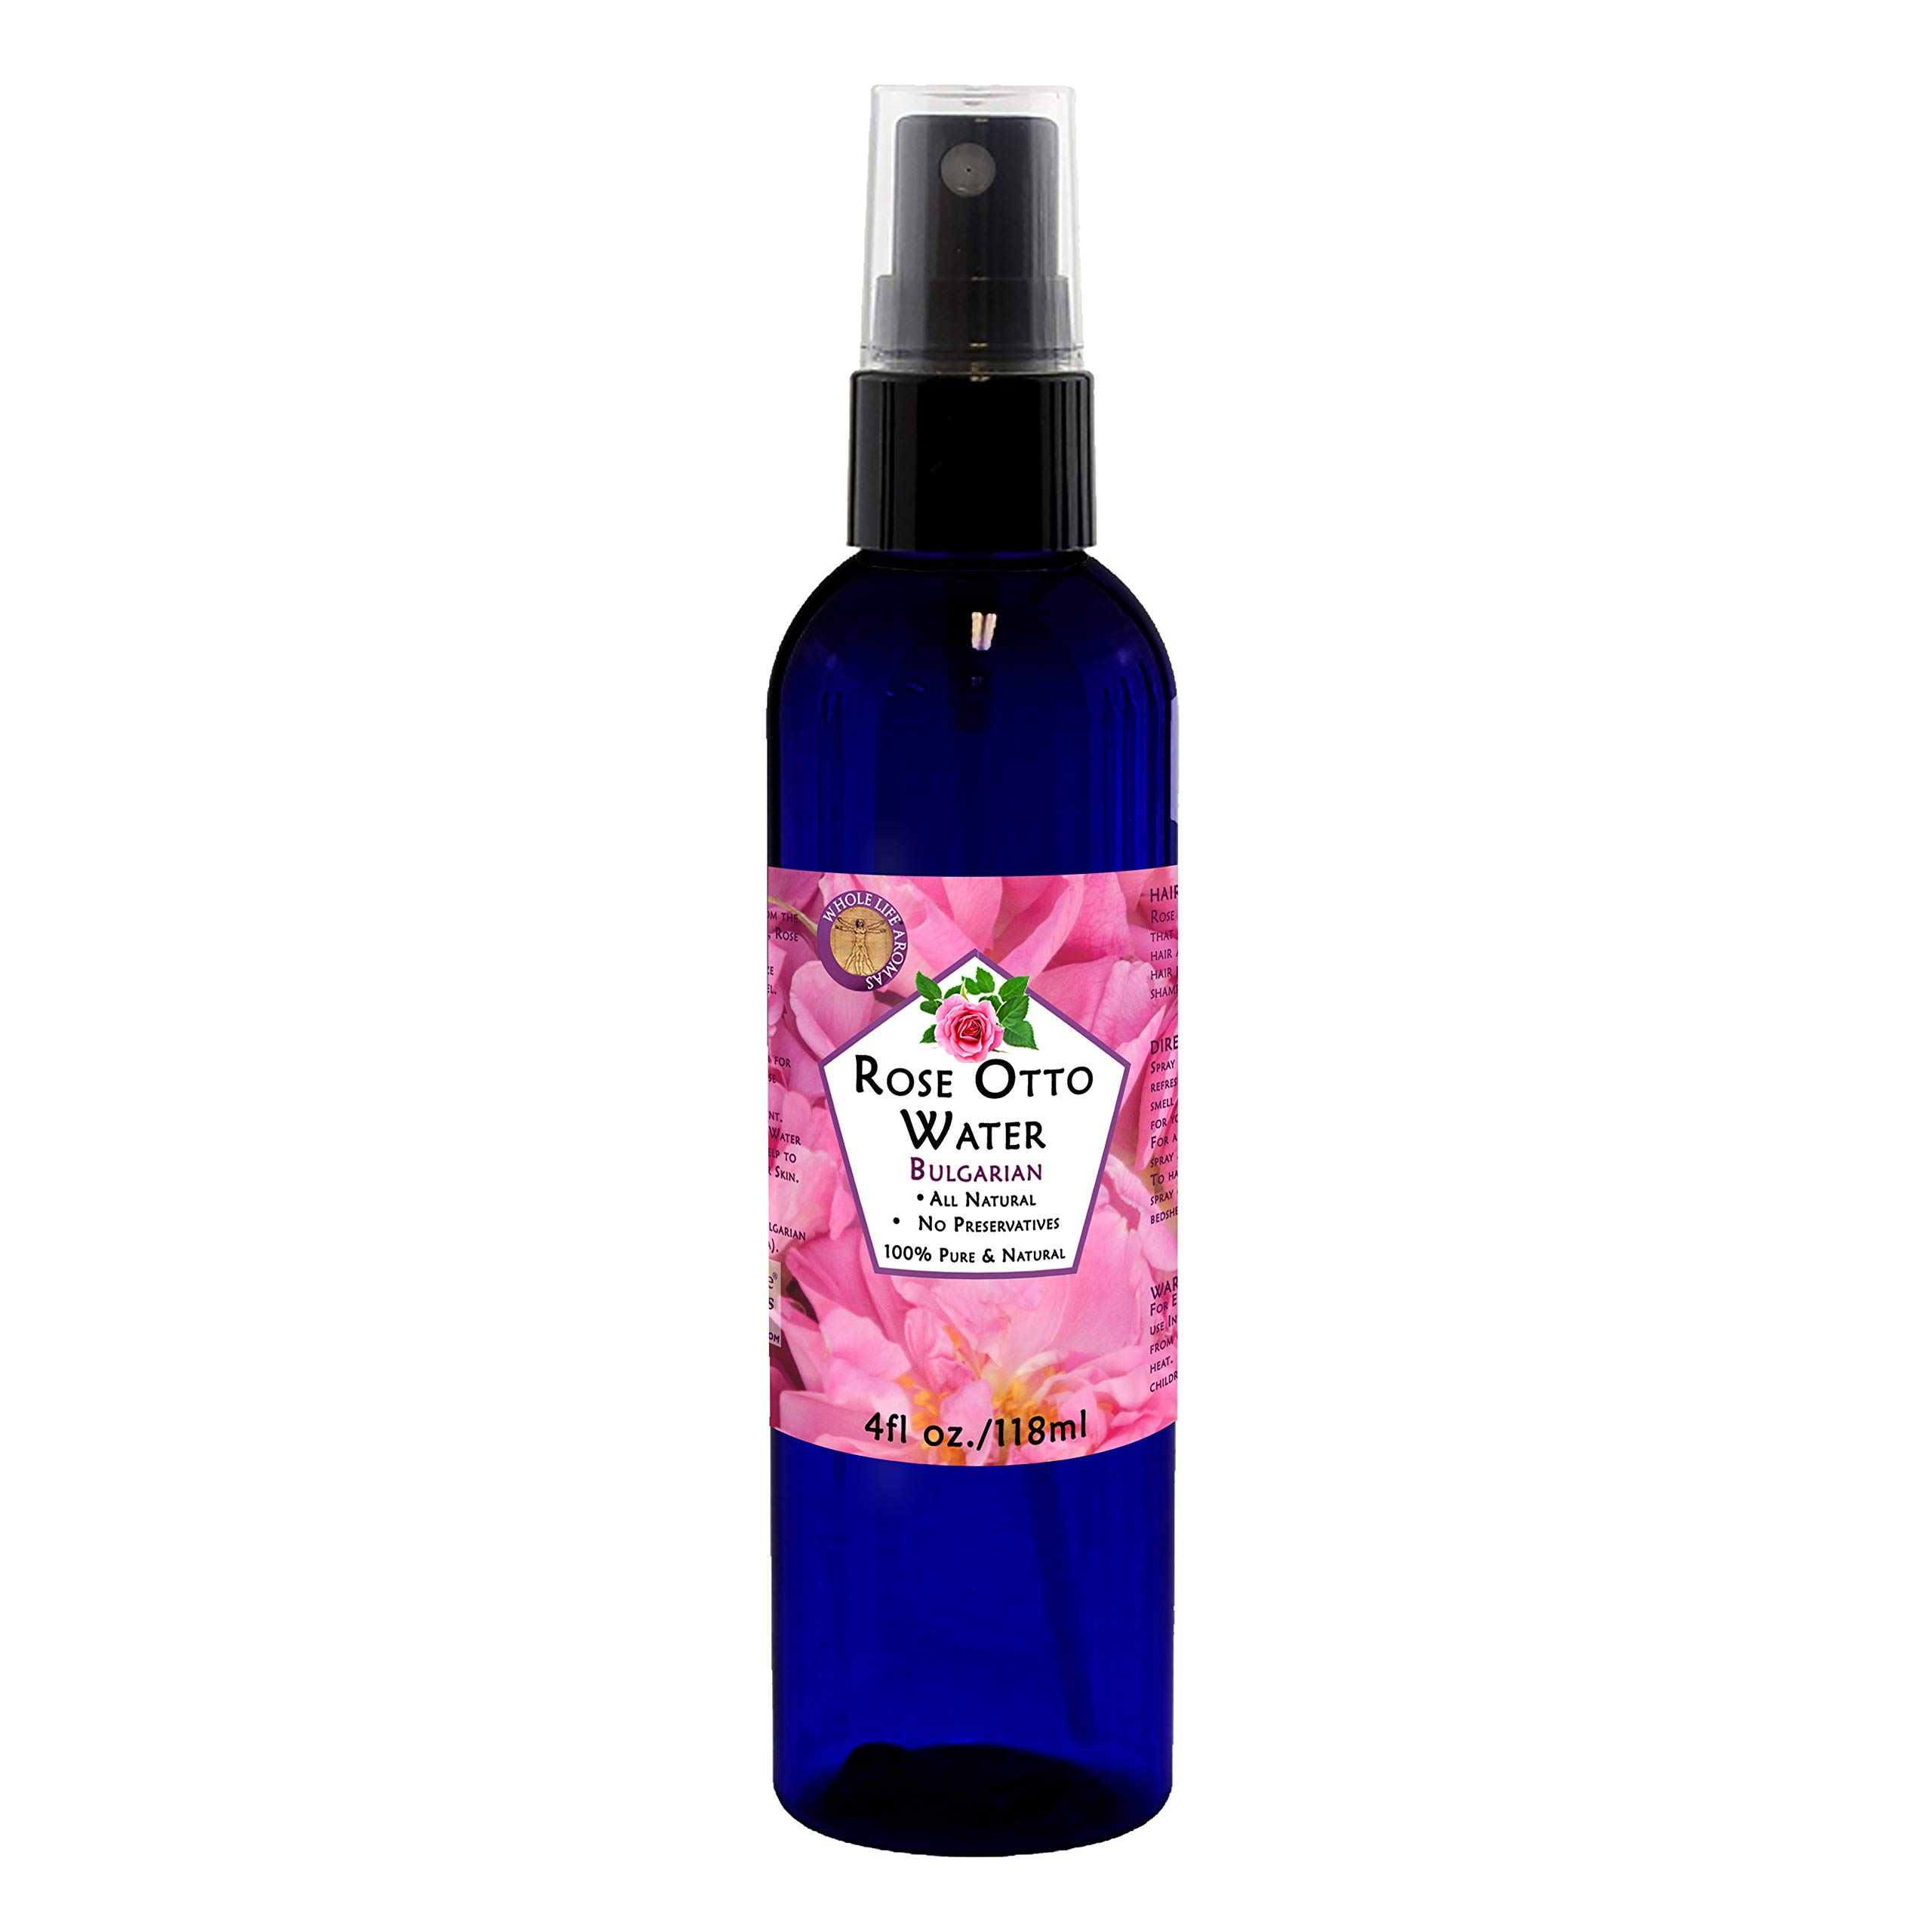 100% Pure Rose Water Hydrosol Hydrating Spray Toner and Balancing Mist for your Face. Finest Bulgarian Rose Otto - Rose Damascena - Quality Therapeutic Grade 4oz.